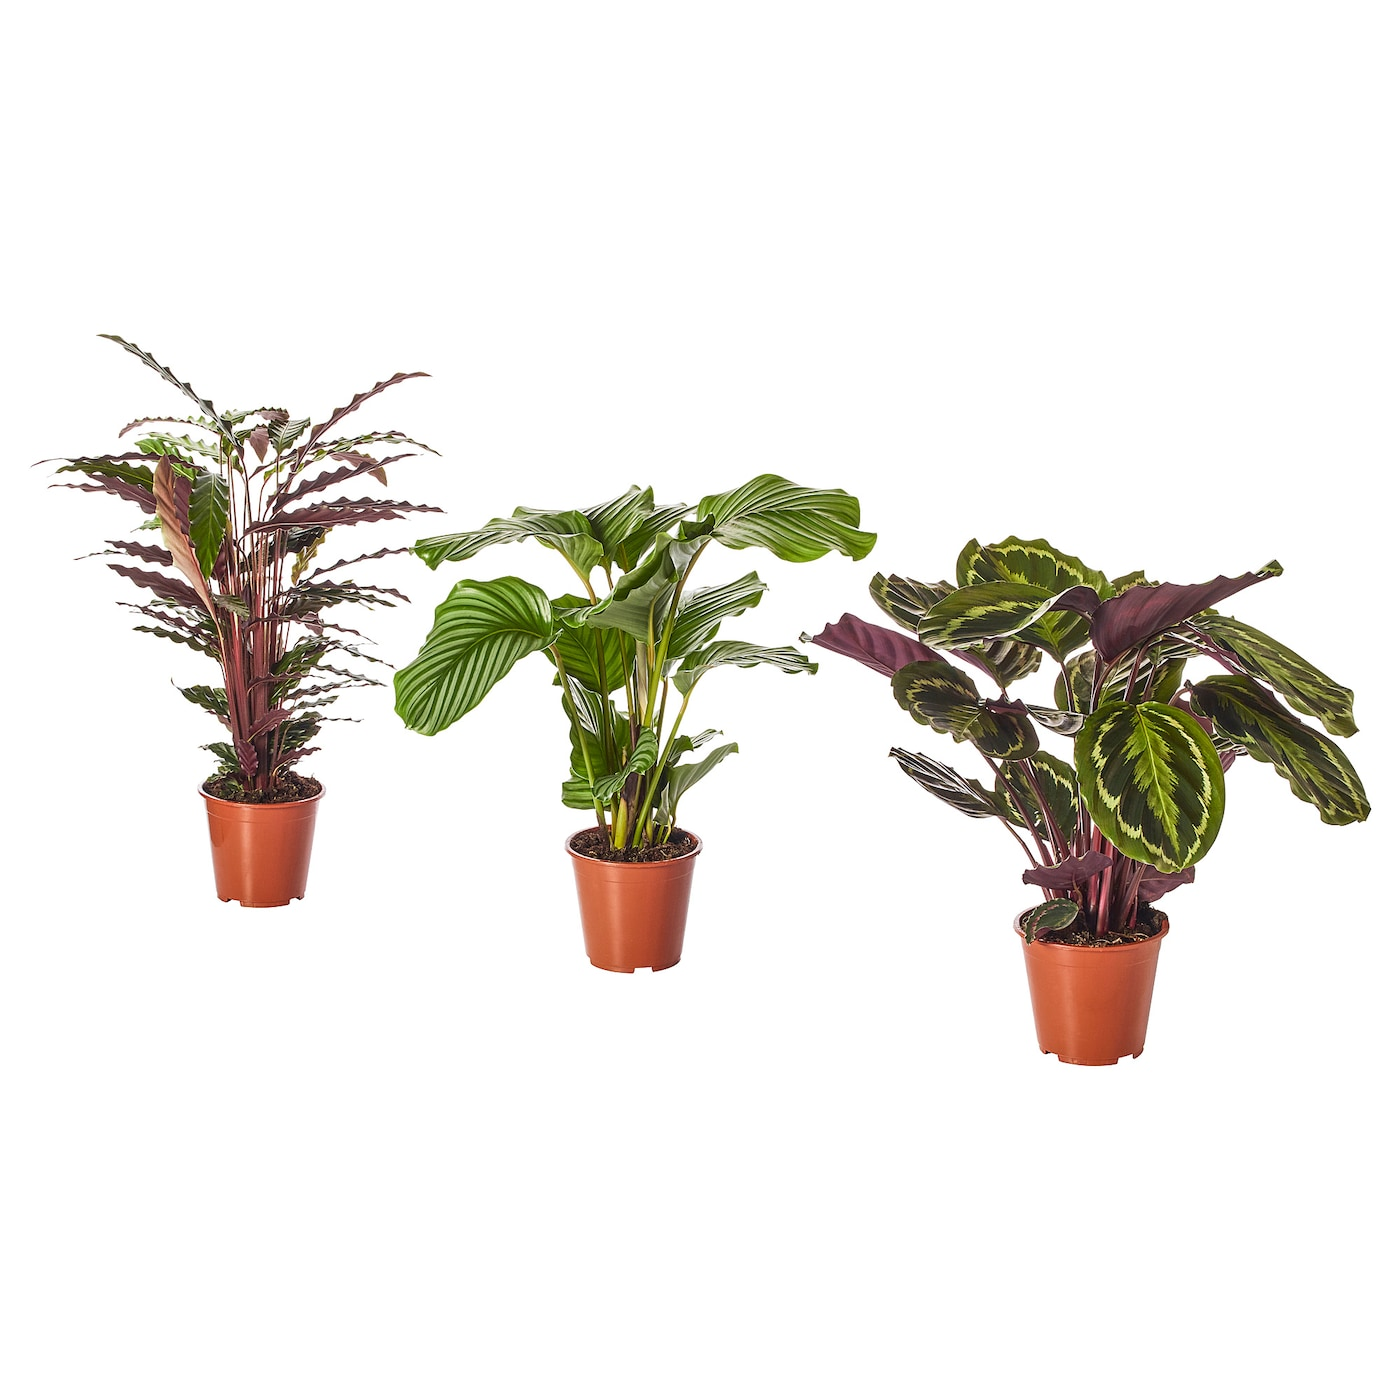 House Plants & Cactus - Outdoor and Indoor Plants | IKEA on trailing flowers, variegated ivy house plant, trailing green plants, trailing annual plants, angel trumpet flower plant, trailing vines and roots, droopy marijuana plant, trailing flowering shrub texas, trailing aloe, trailing lantana varieties, trailing flowering plants, trailing begonias, butterfly rose plant, trailing plants for containers, trailing vinca vine, tiger lily plant, kalanchoe plant,